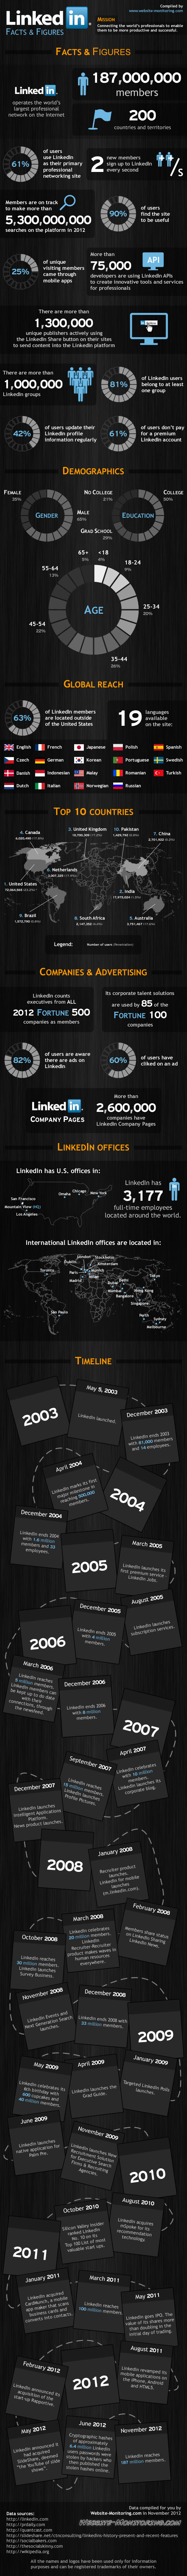 8226762514 f688e7bfcb o Social Media: A Roundup of LinkedIn Fast Facts and Statsitics